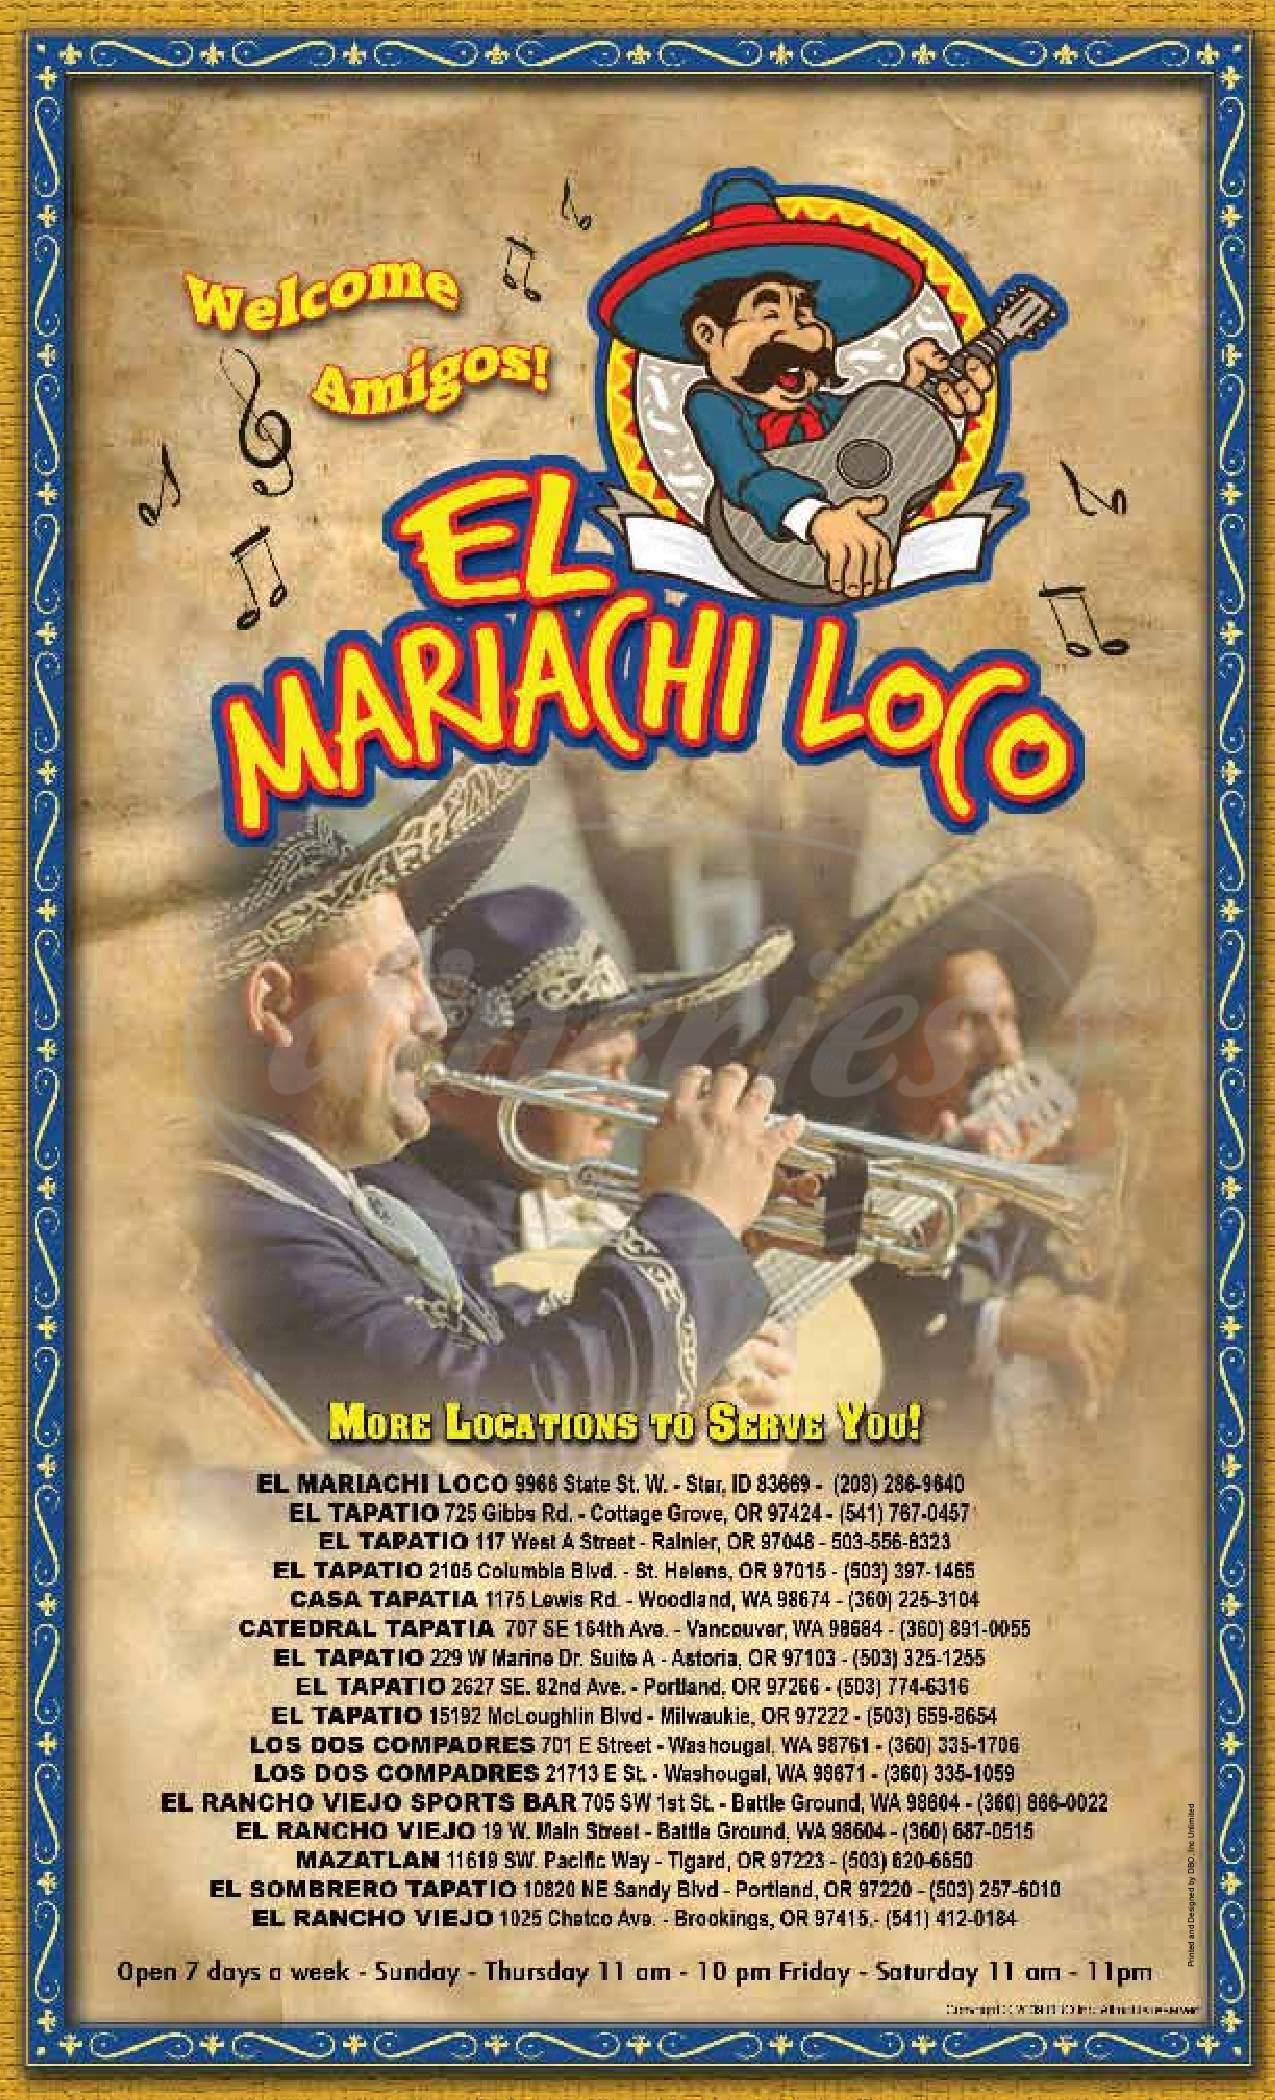 menu for El Mariachi Loco Restaurant